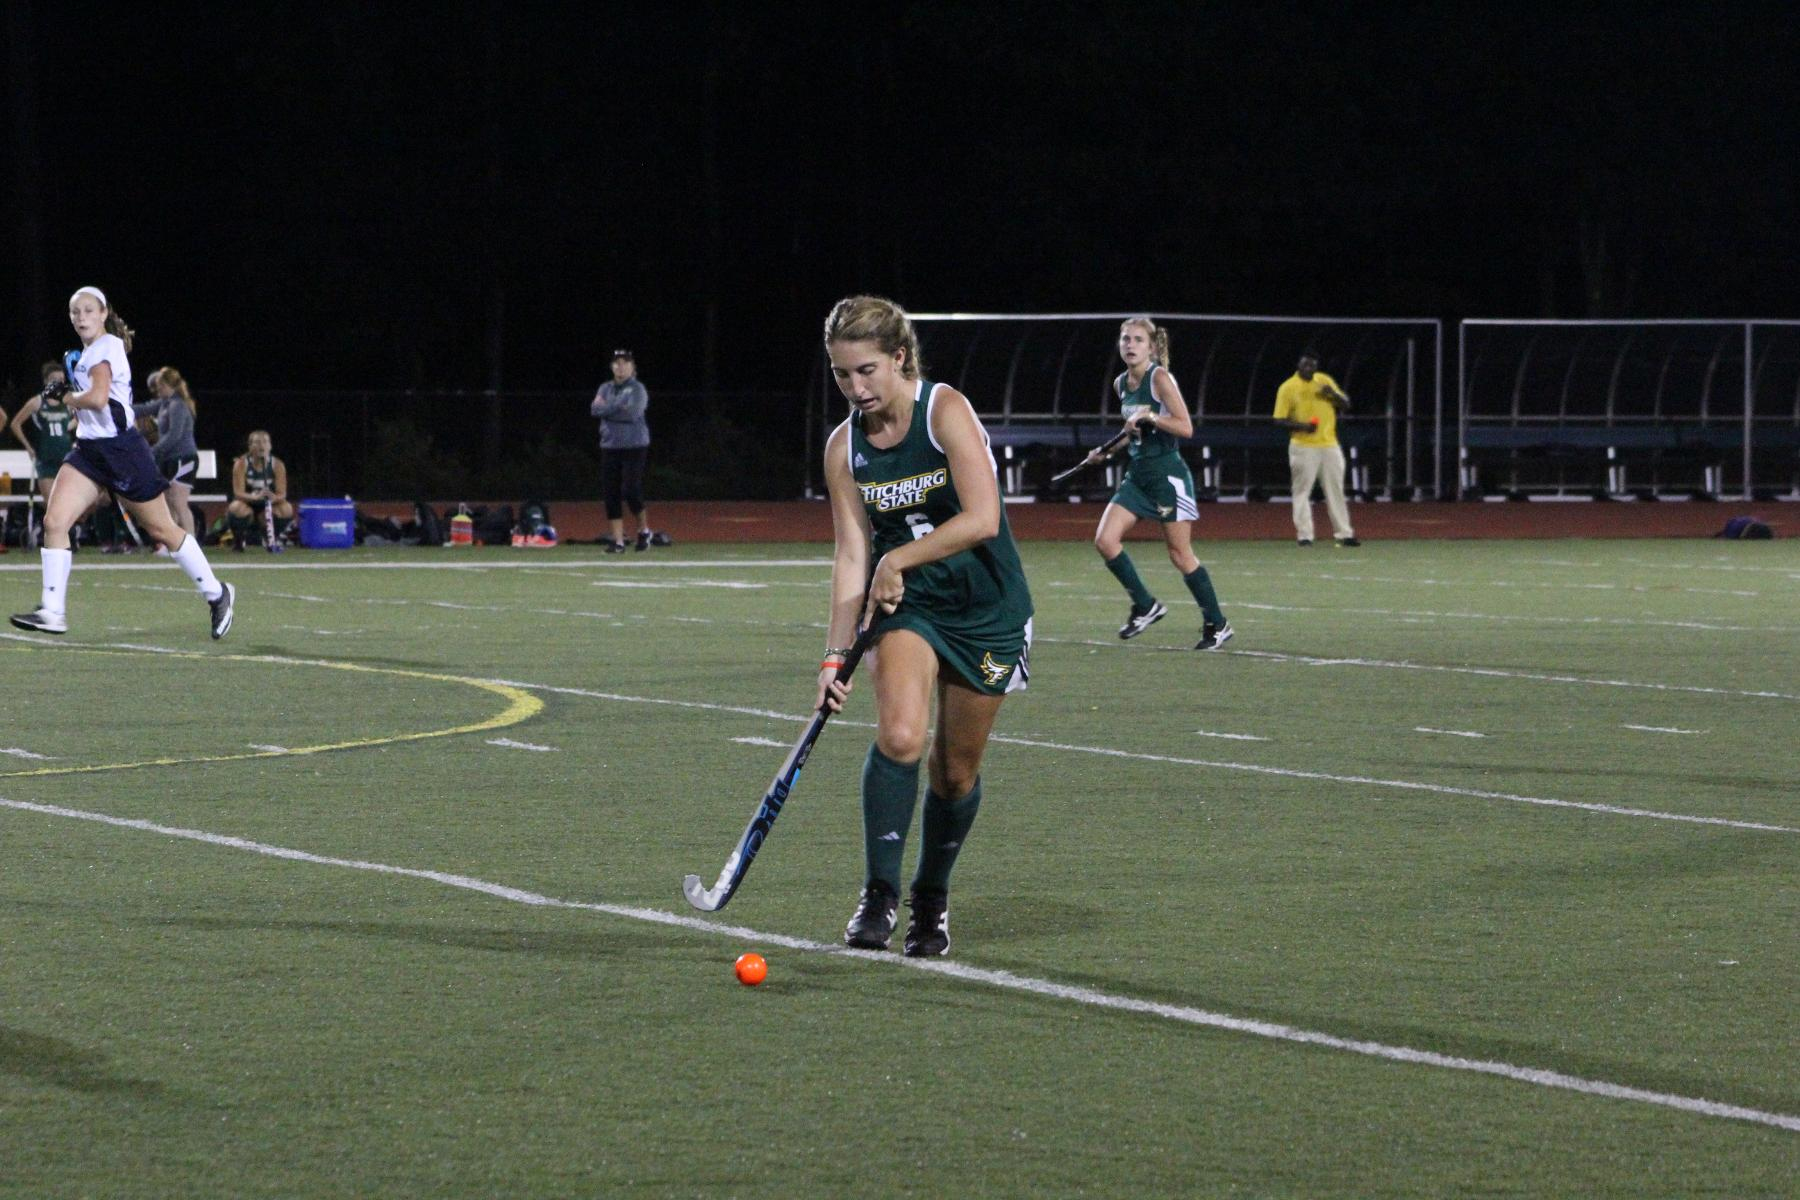 Fitchburg State Downs WPI, 2-1